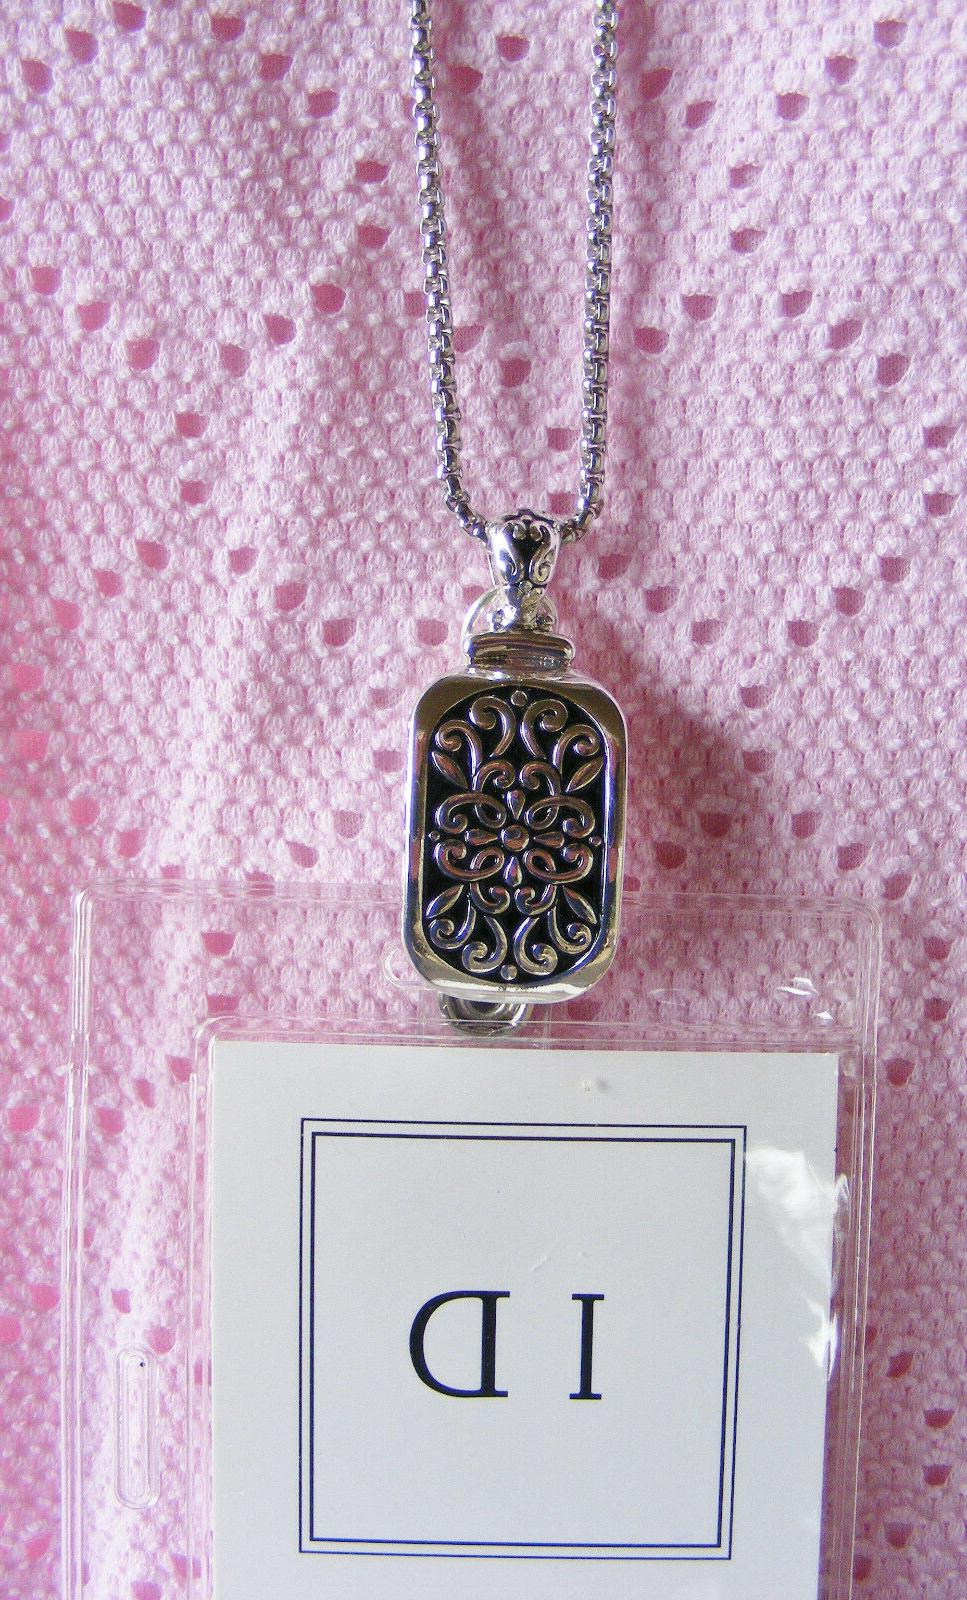 Designer Scroll ID Name Tag Holder Necklace Gft